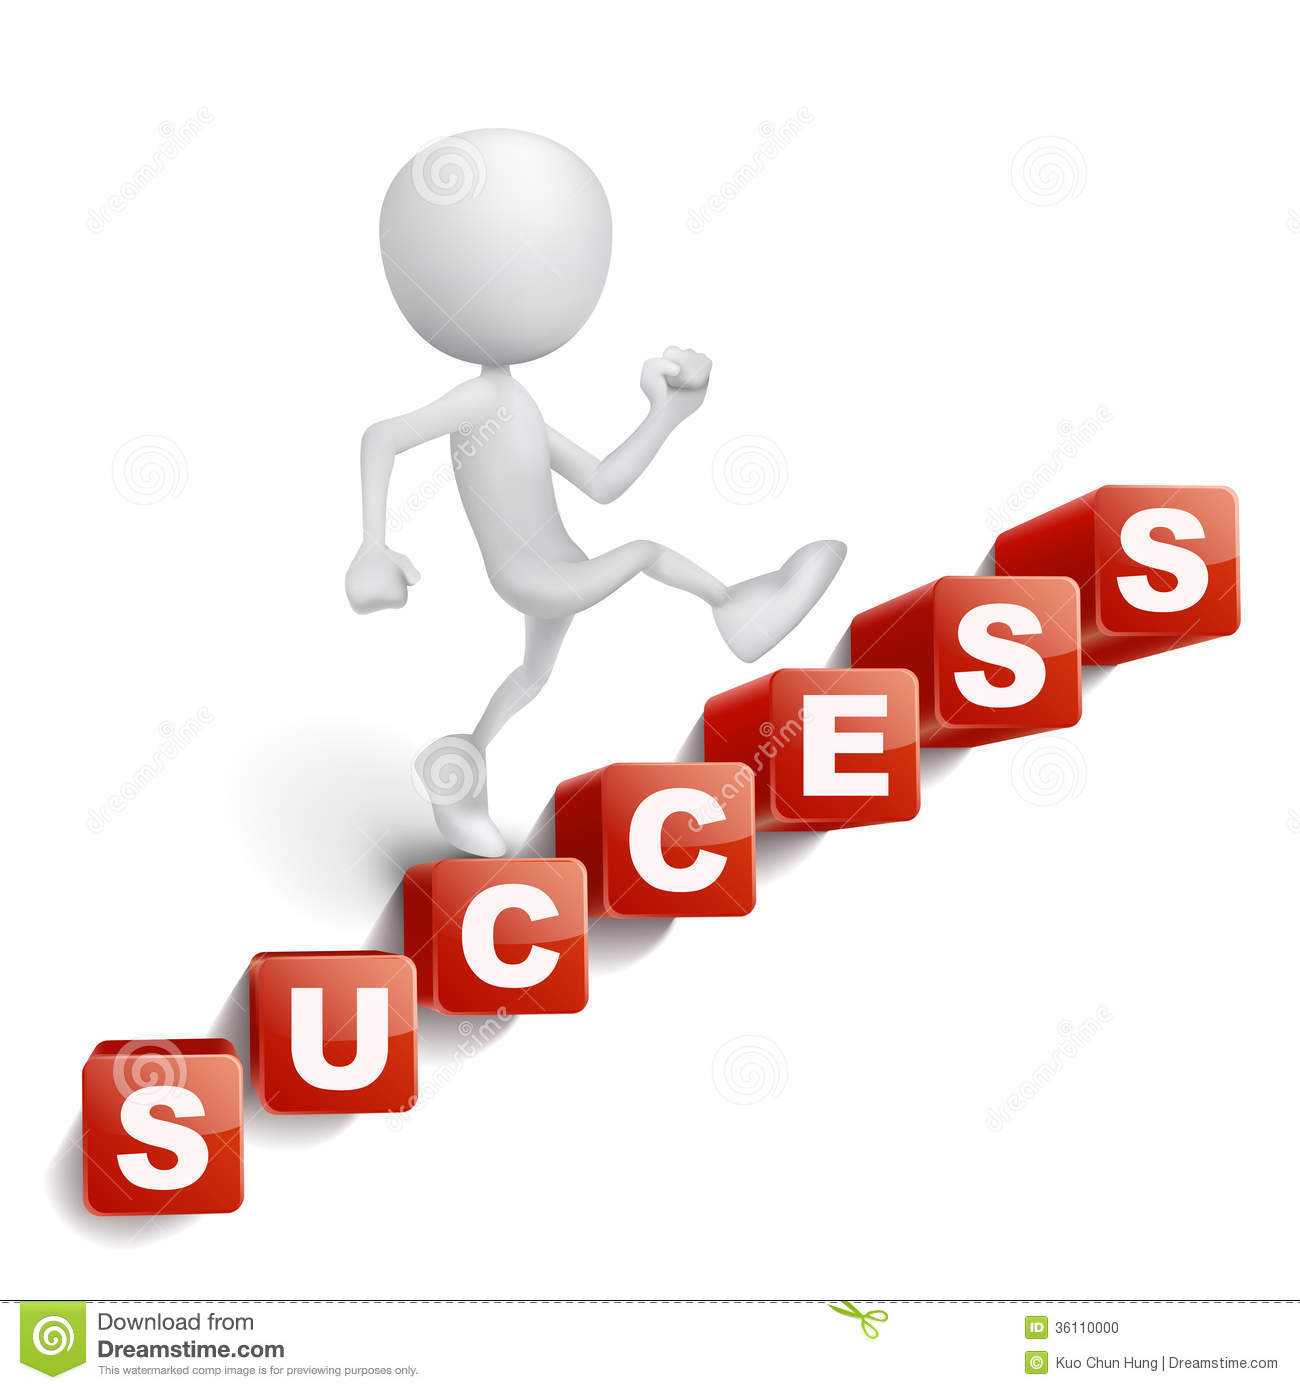 Steps to success clipart Transparent pictures on F.